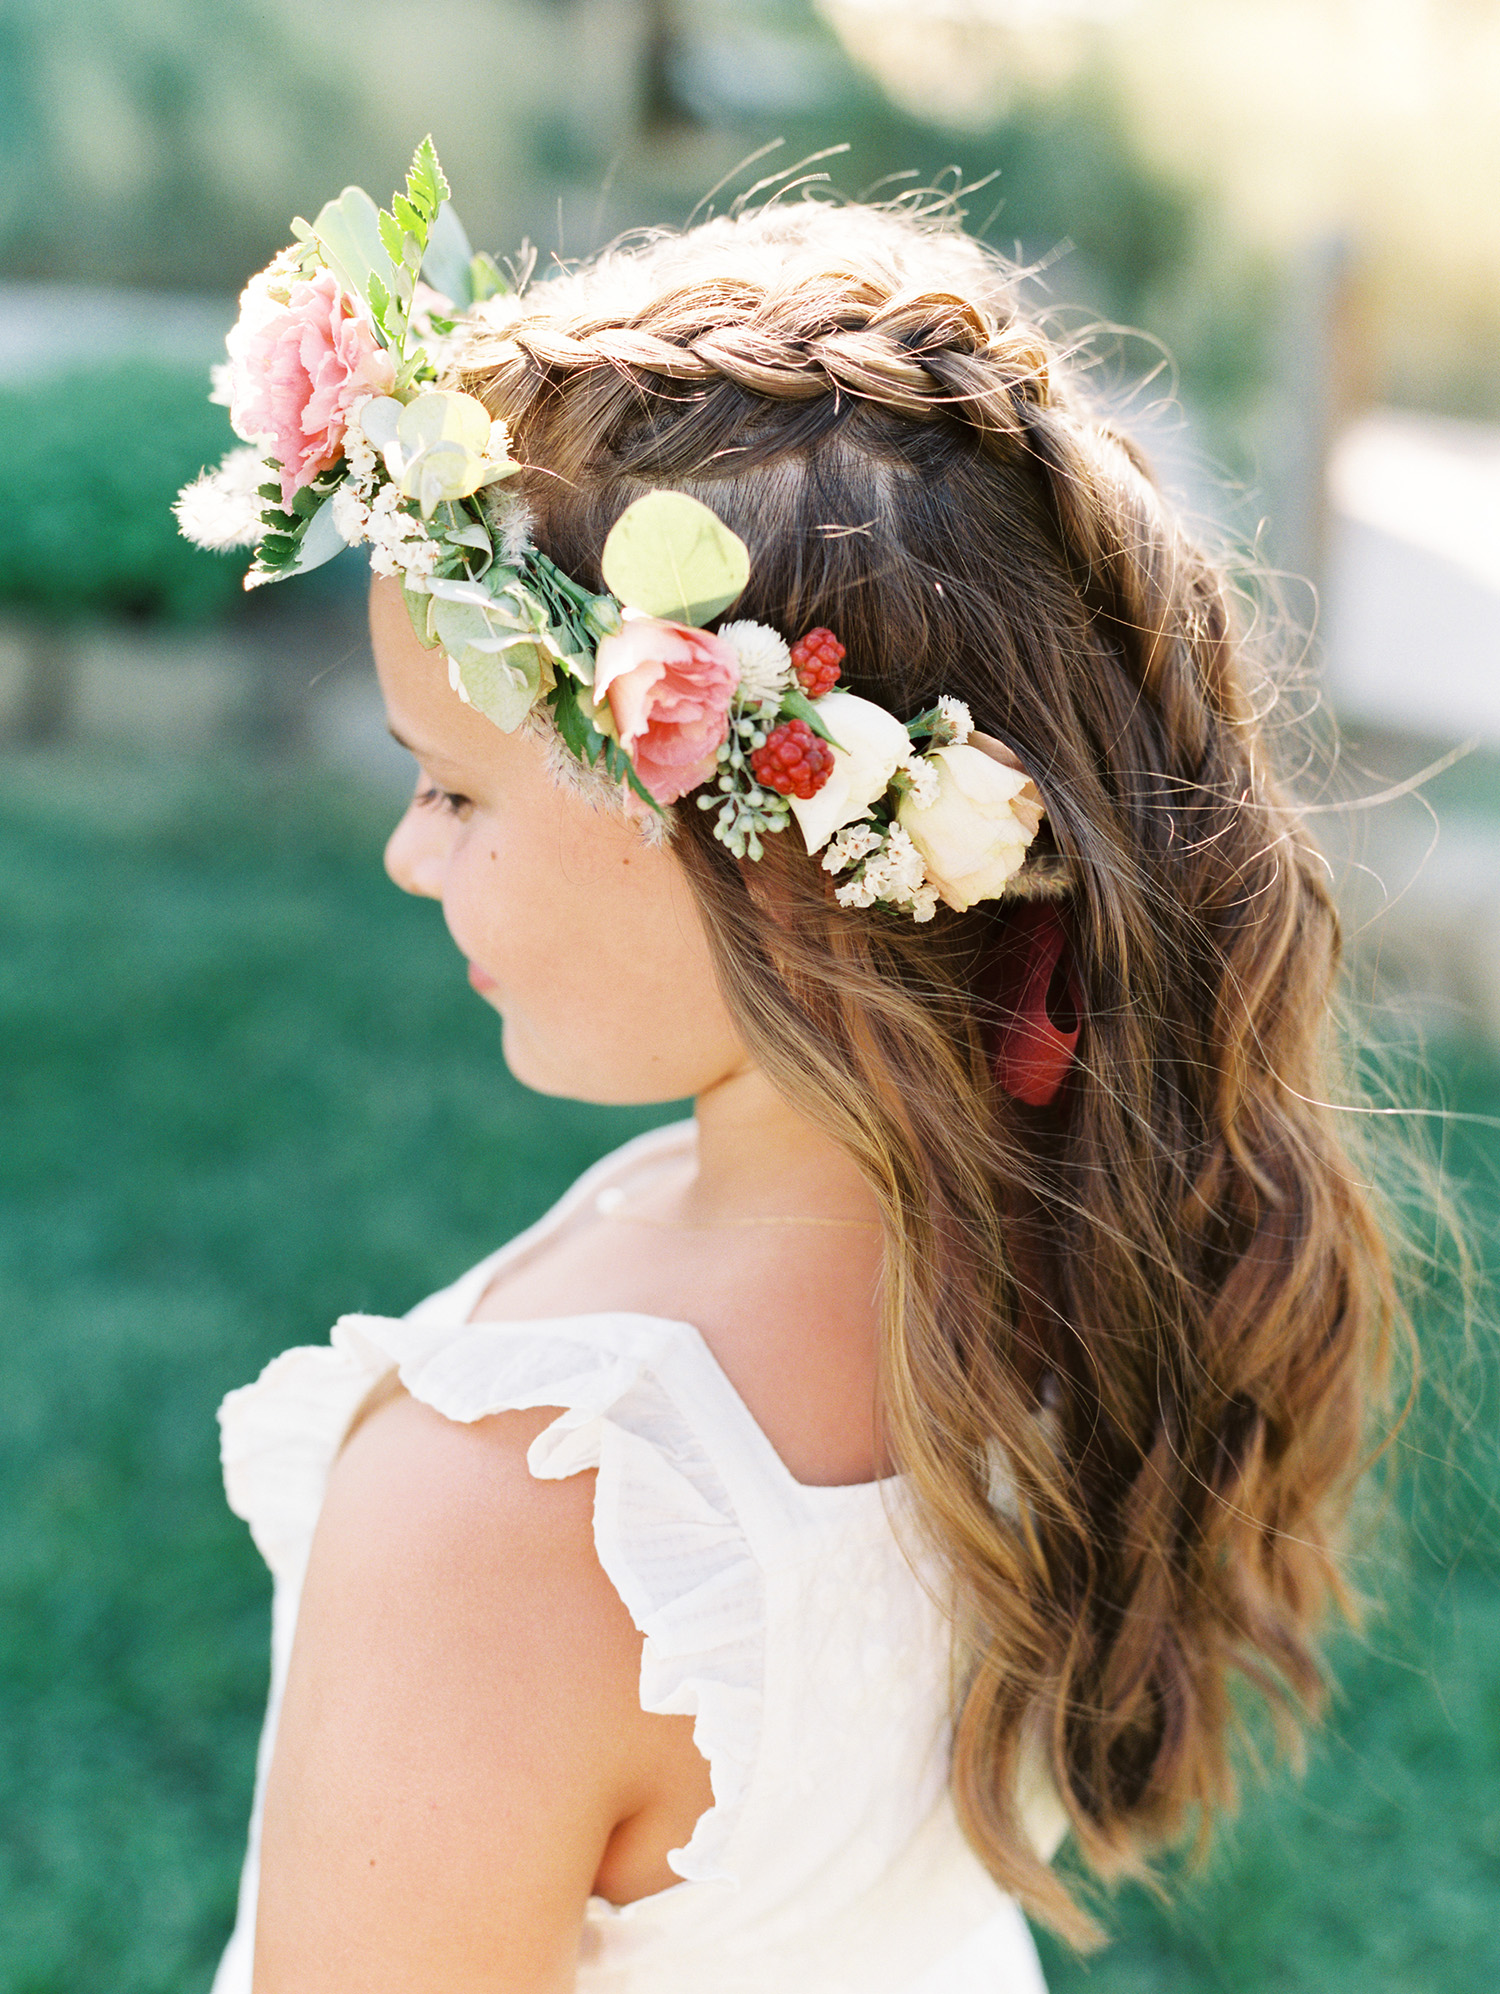 christina ken wedding flower girl hair